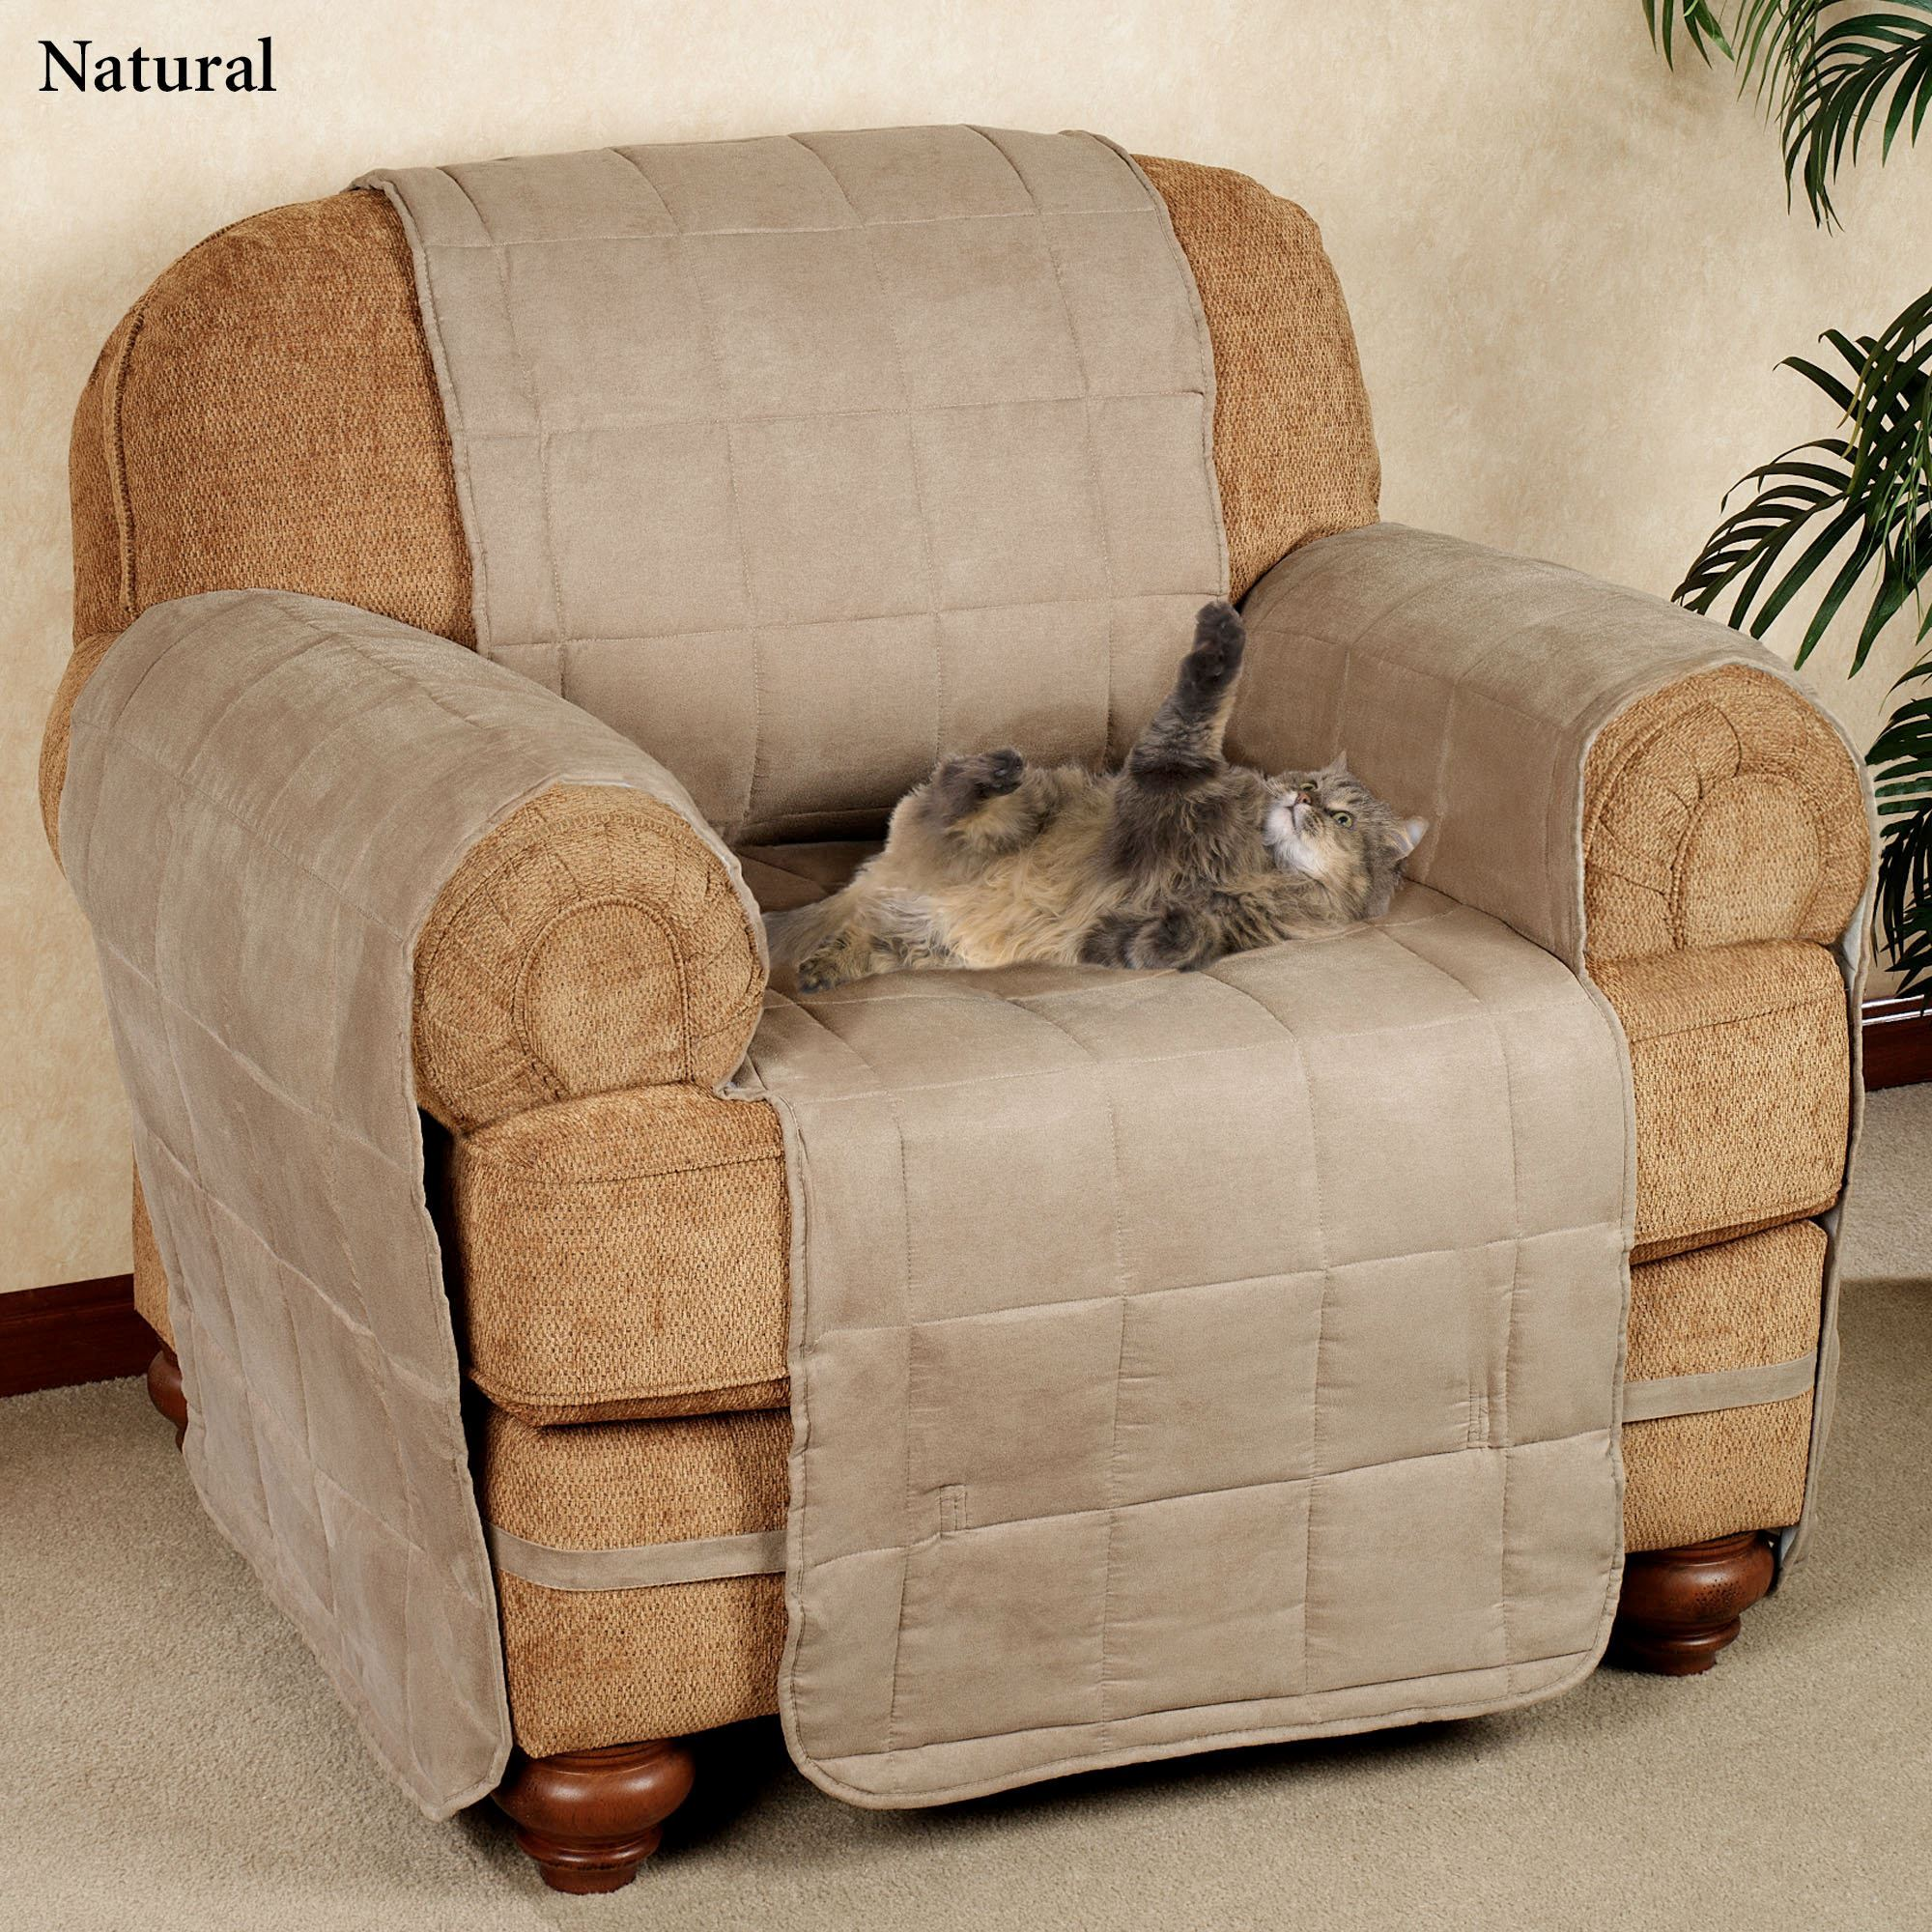 Pet Cover For Extra Large Couch 60 24: Ultimate Pet Furniture Protectors With Straps